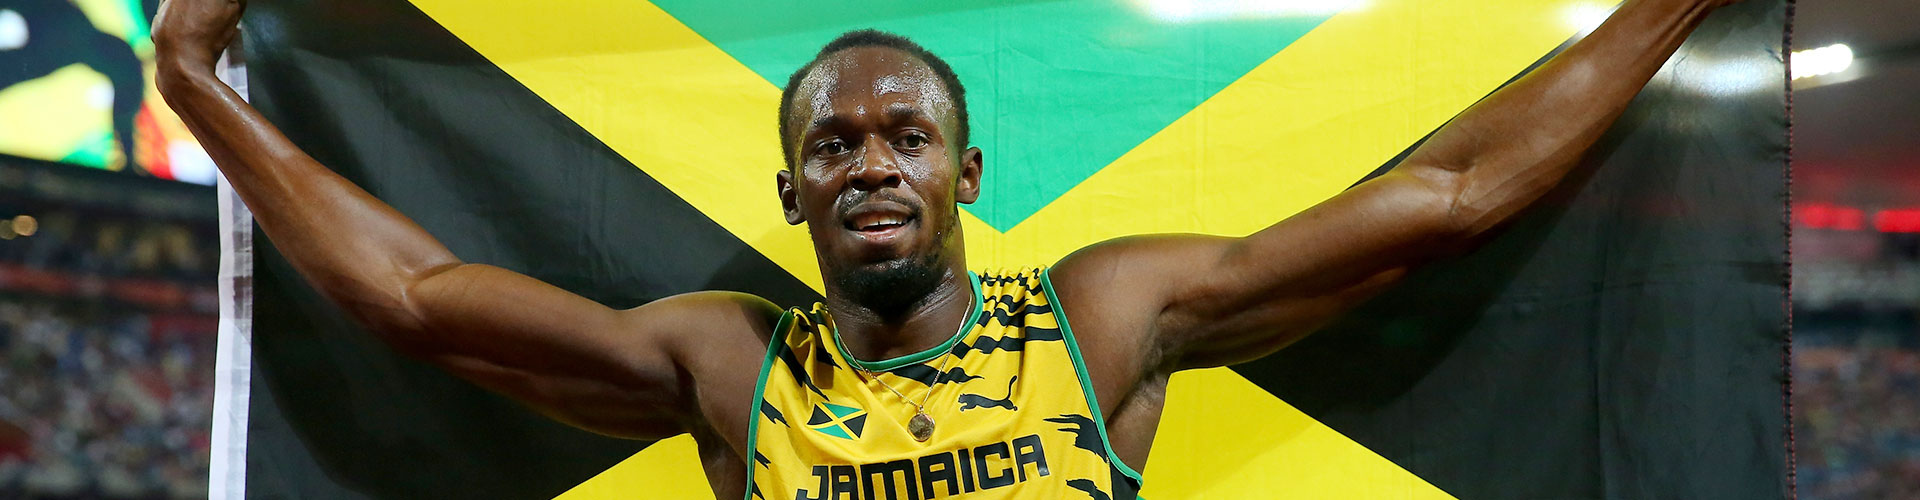 Is Usain Bolt the greatest Olympian in history?